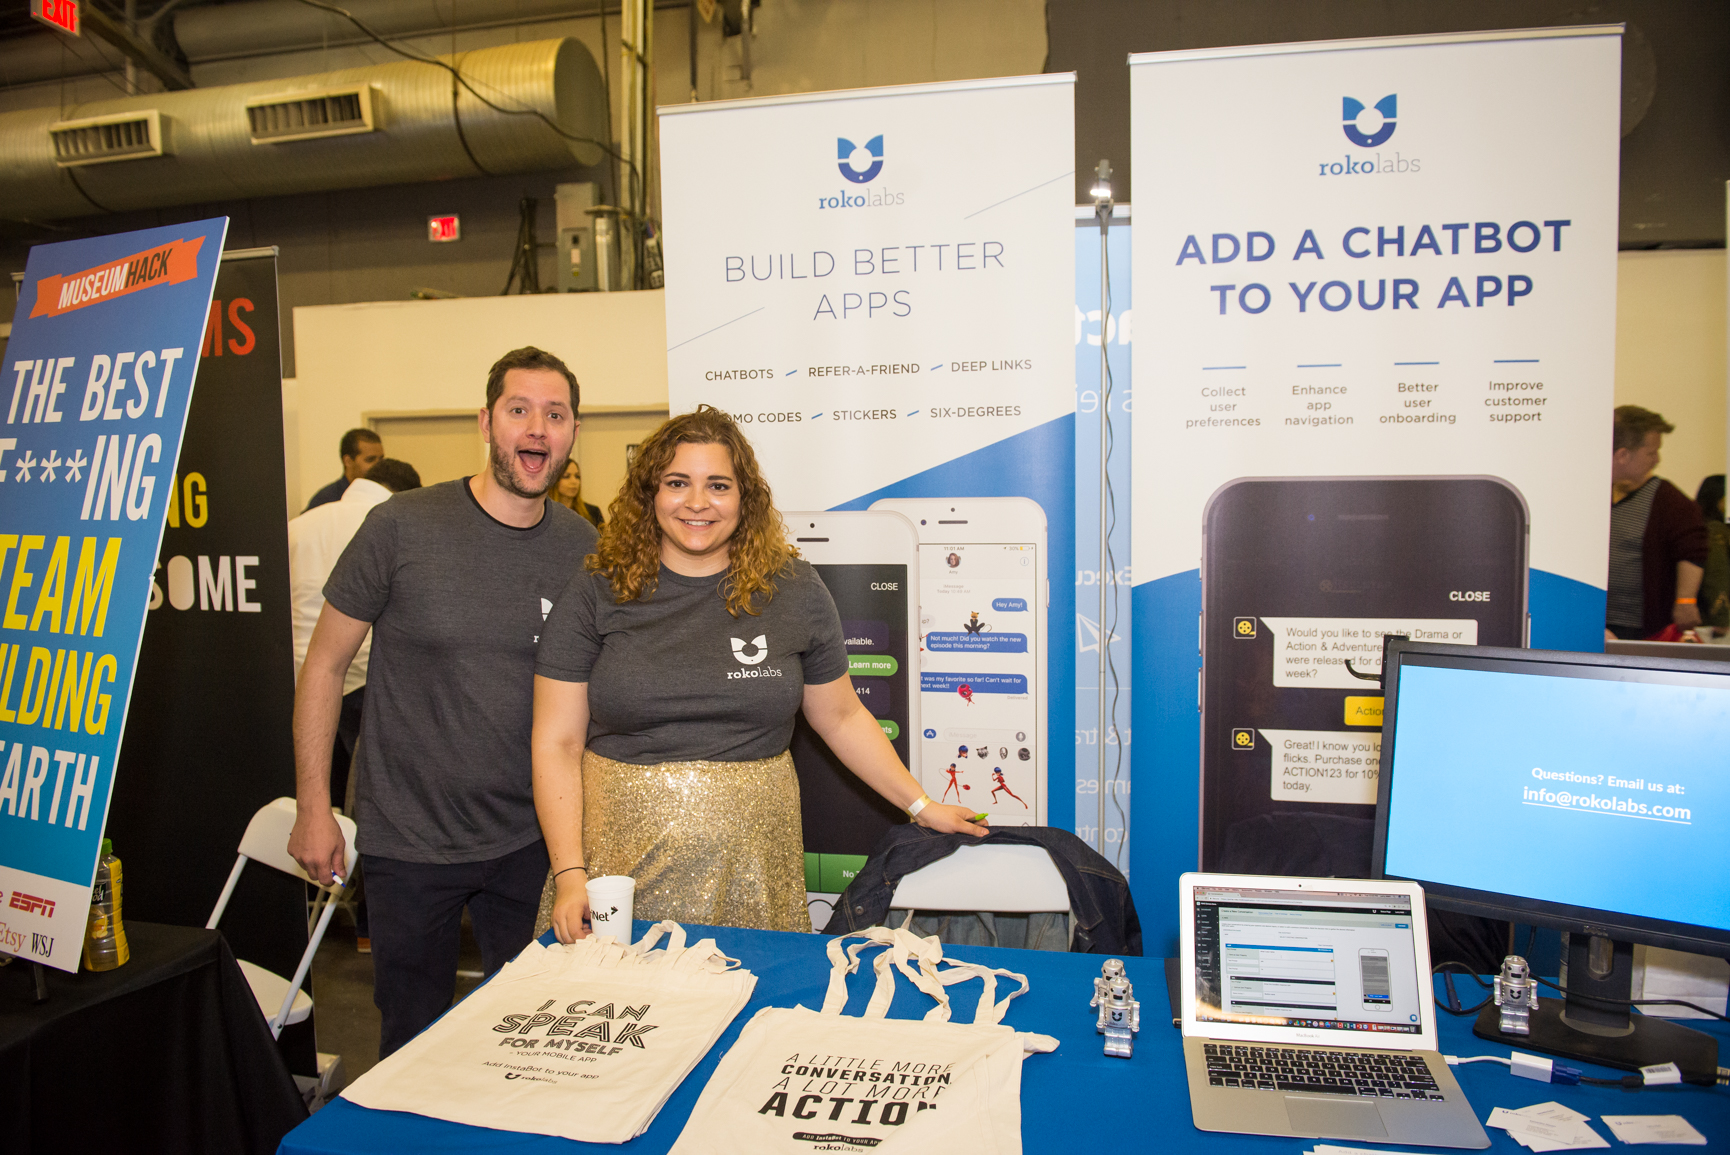 2017-04-18 TechDay - Pier 94 - NYC-3461.jpg